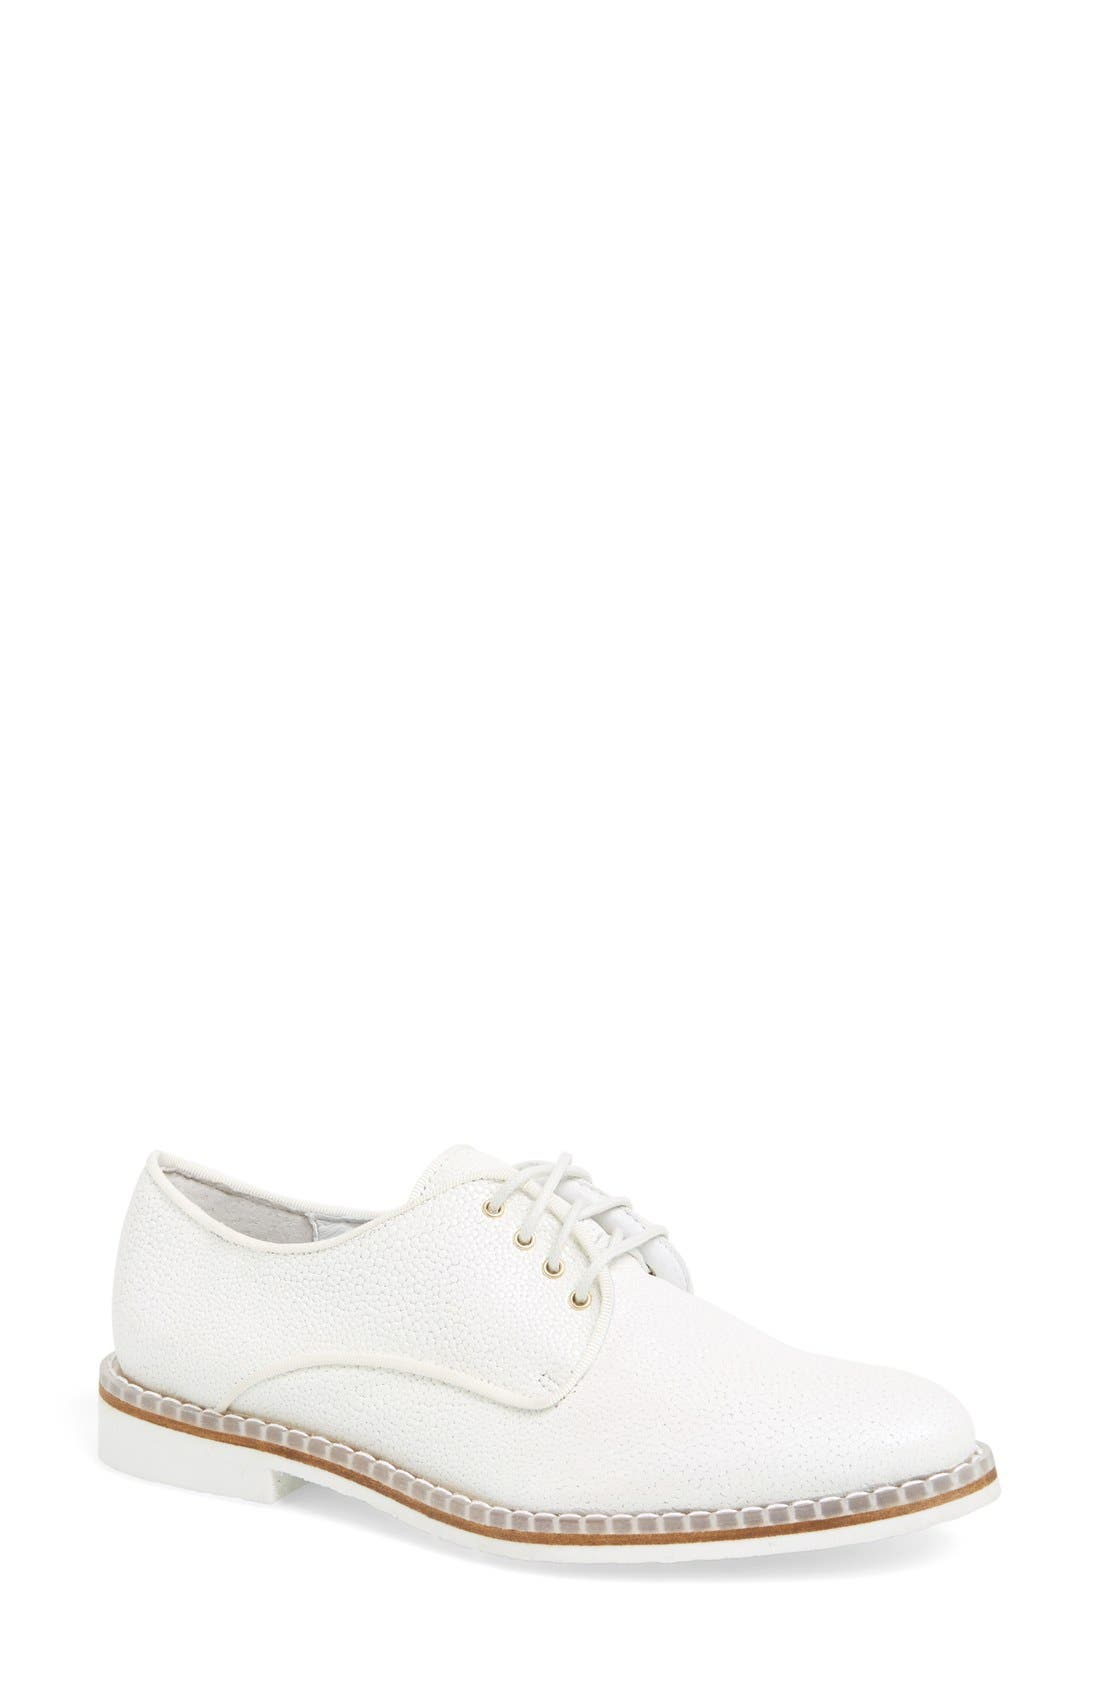 'Zoe' Stingray Embossed Leather Oxford,                         Main,                         color,